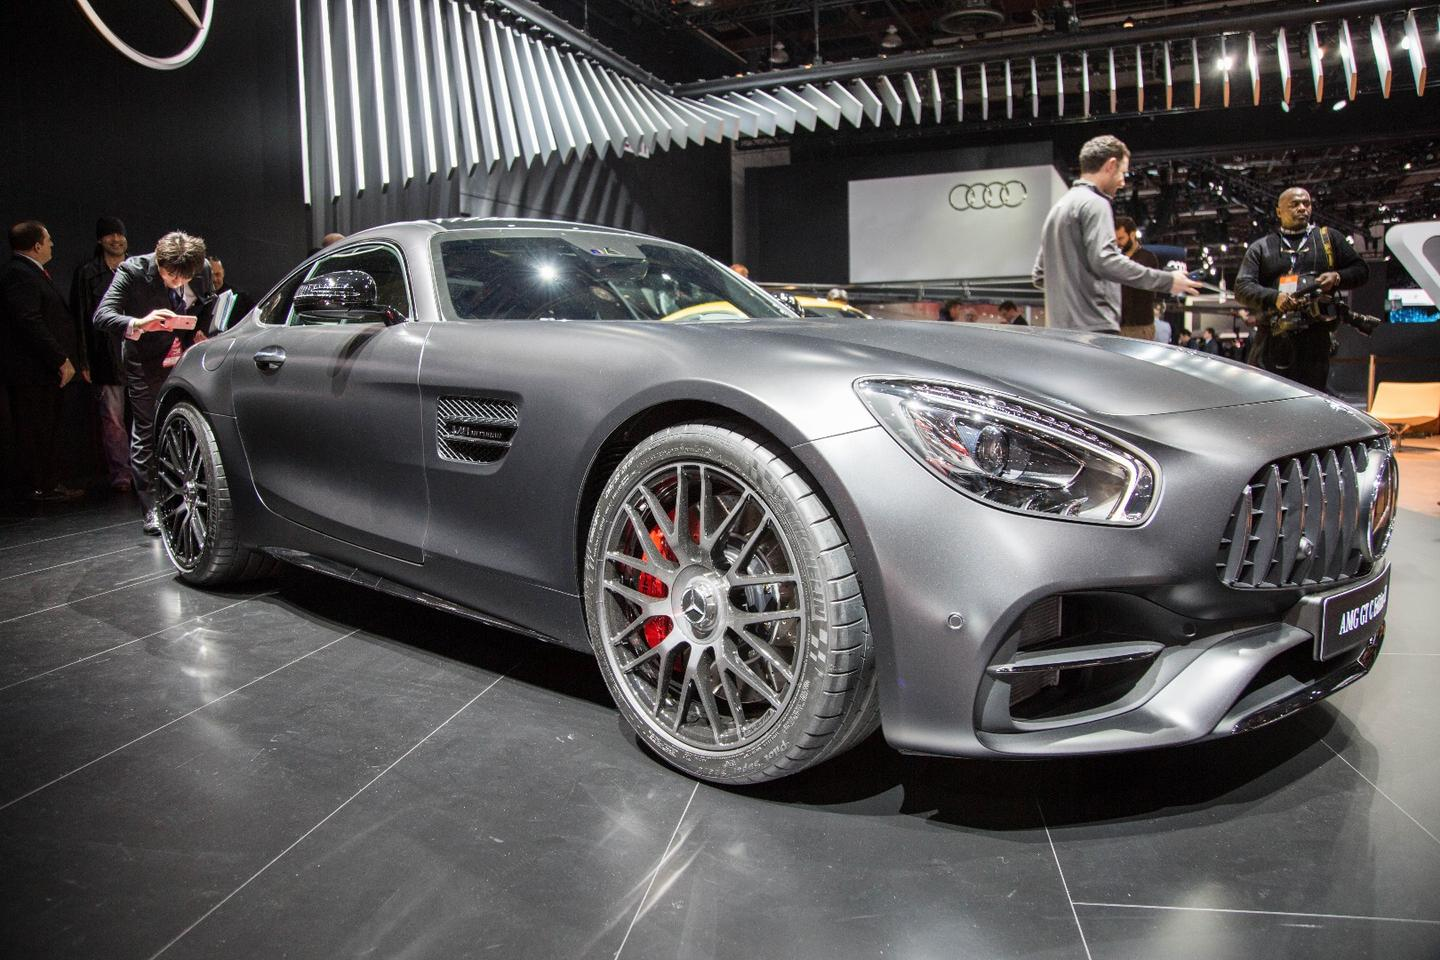 Mercedes-AMG has given the 4.0-liter V8 biturbo engine a few tweaks, resulting in power upgrades